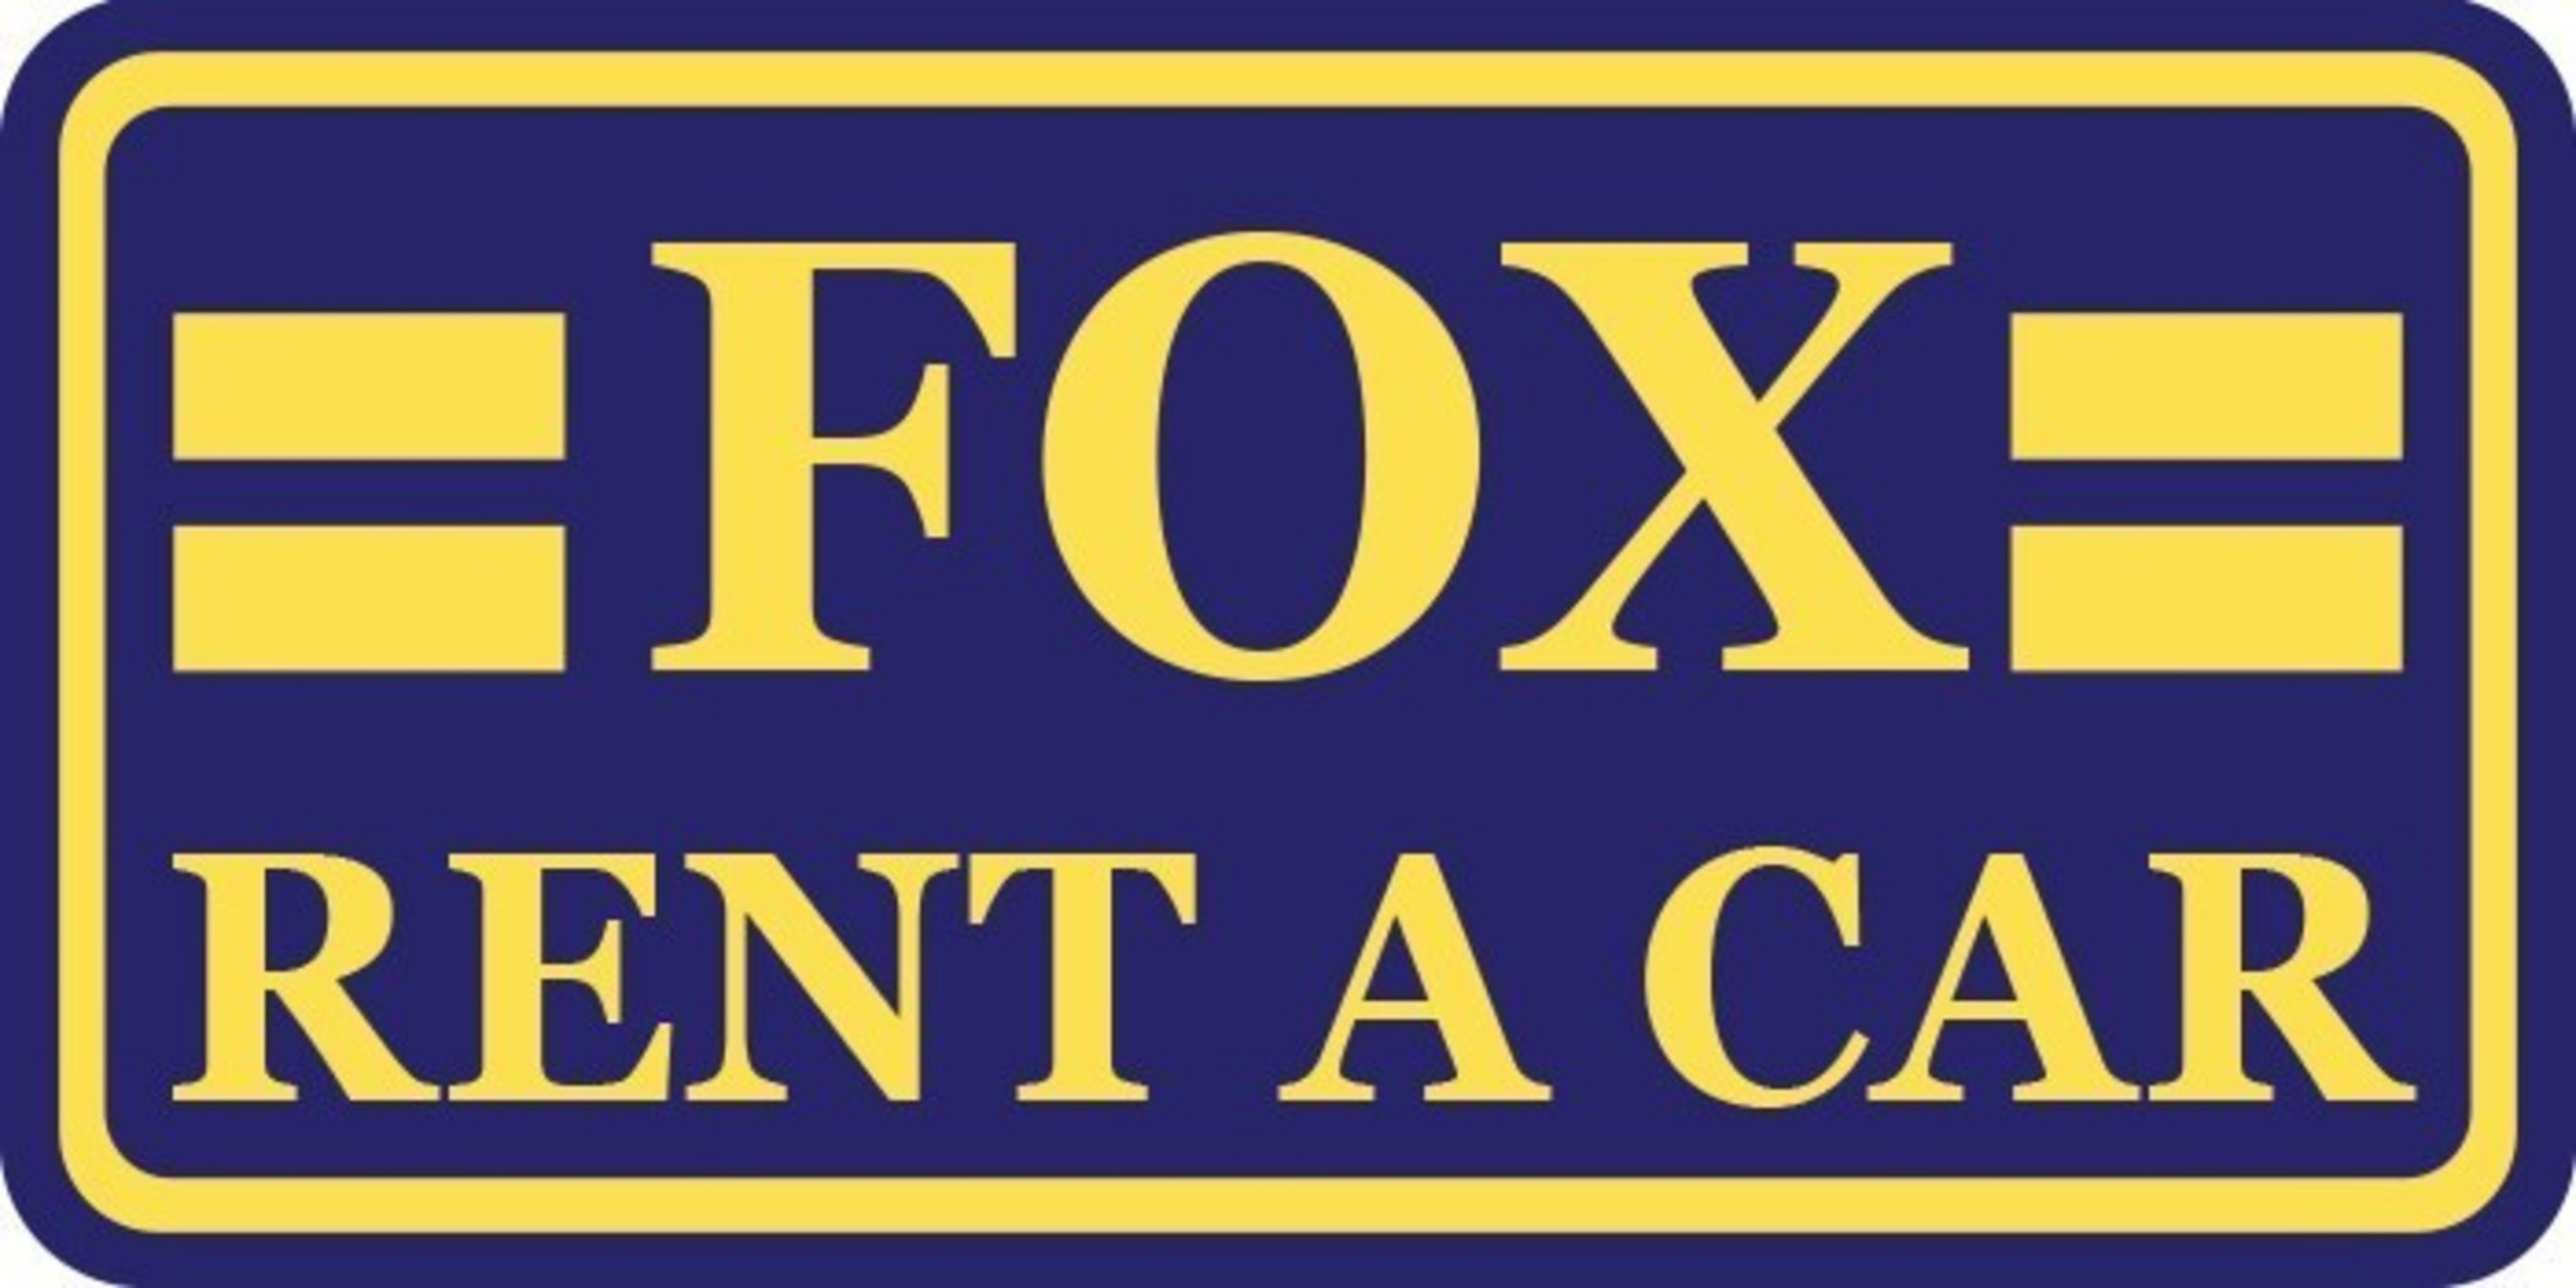 Fox Rent A Car - The Discount Car Rental Company